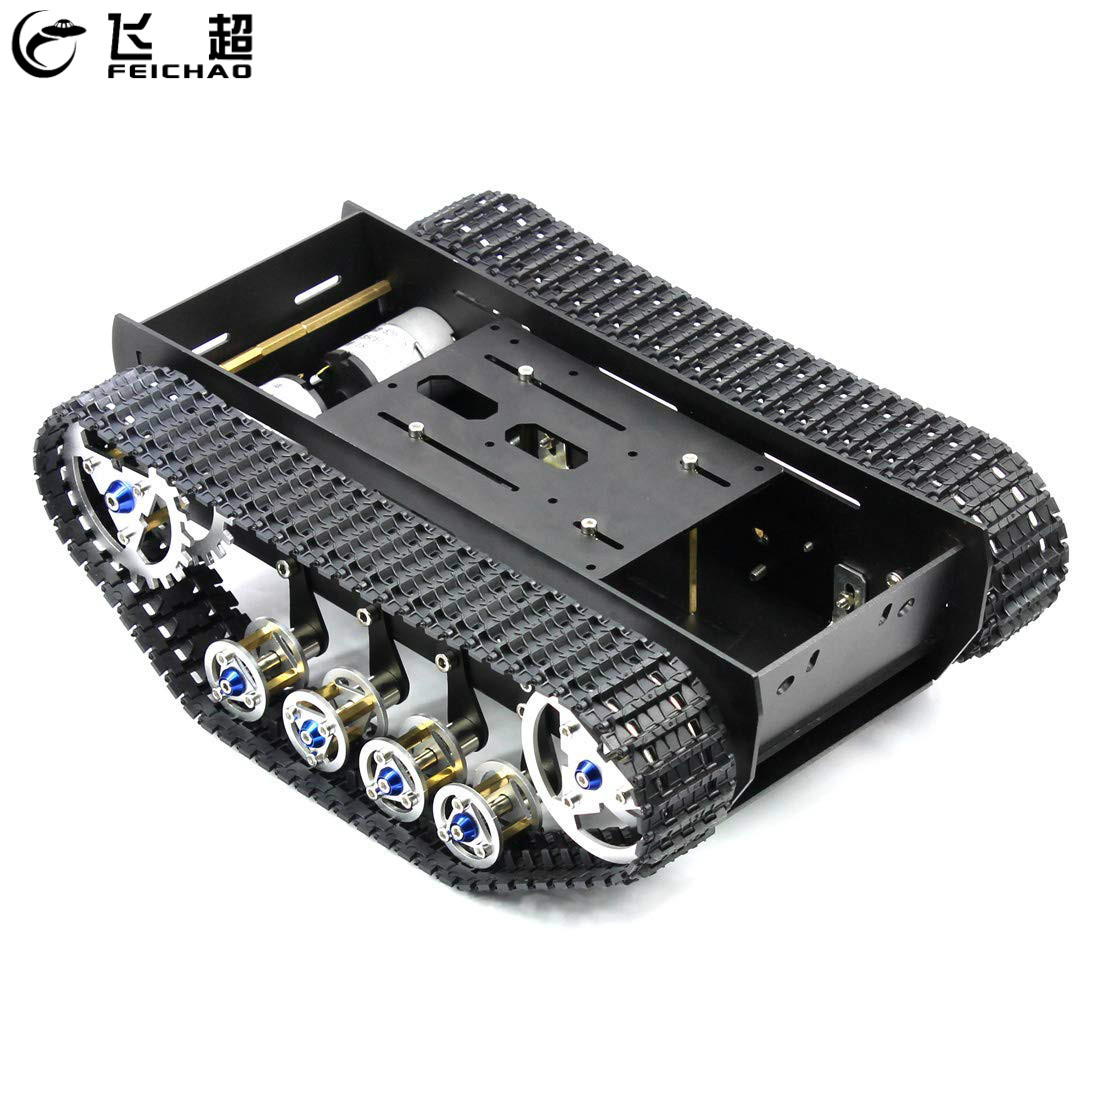 Smart Robot Car Chassis Handmade DIY Kit Light Shock Absorbed Damping Balance Tank Robot Chassis for Arduino Parts body slimming massager electric fitness vibrating device massage belt fat burning thin waist leg belly machine weight losing